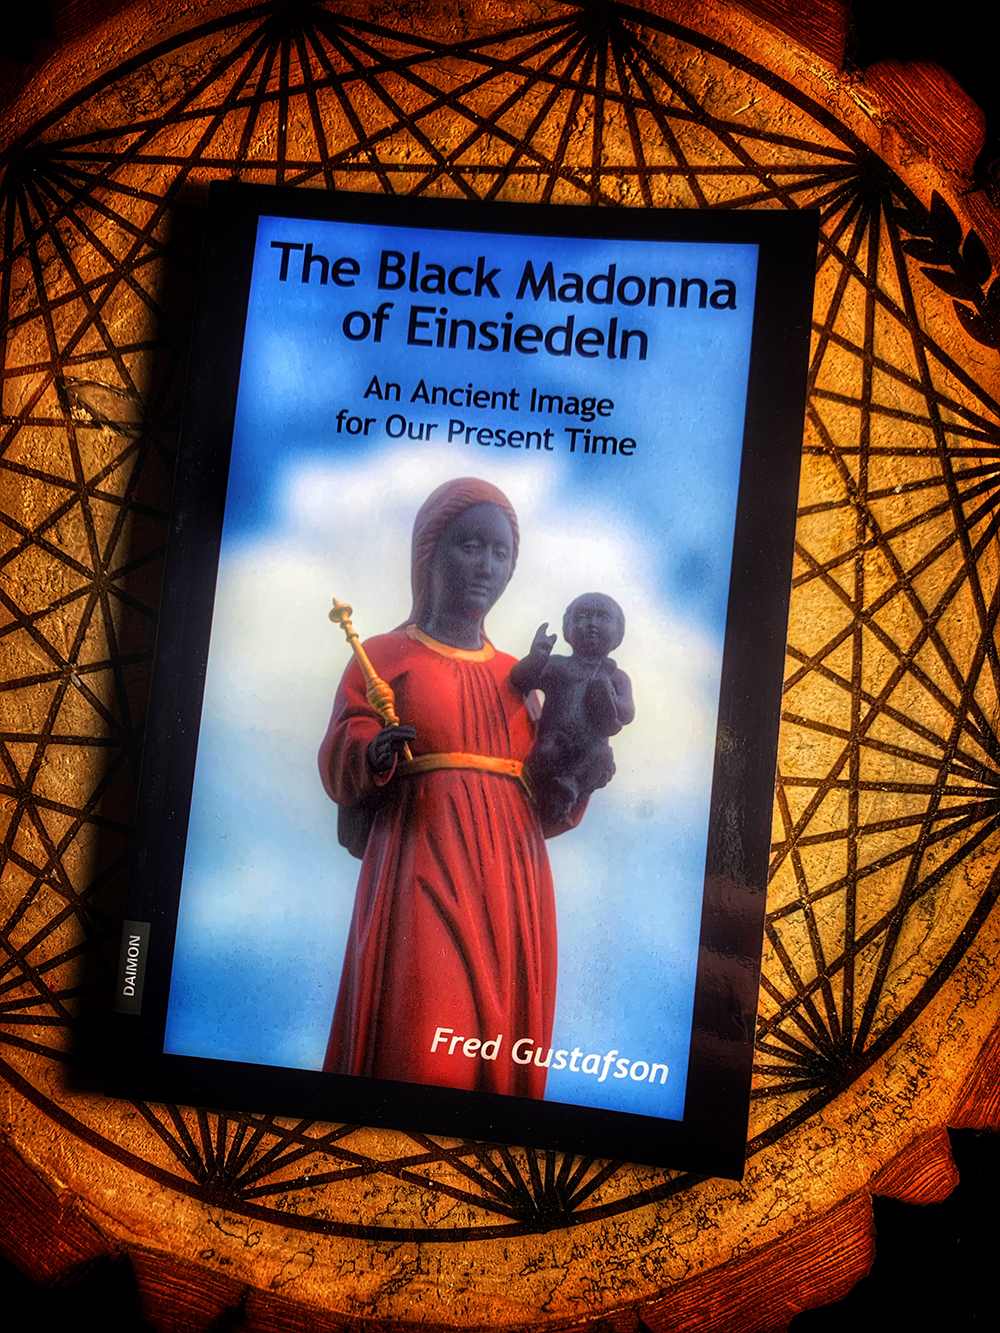 The Black Madonna - An Ancient Image for our Present